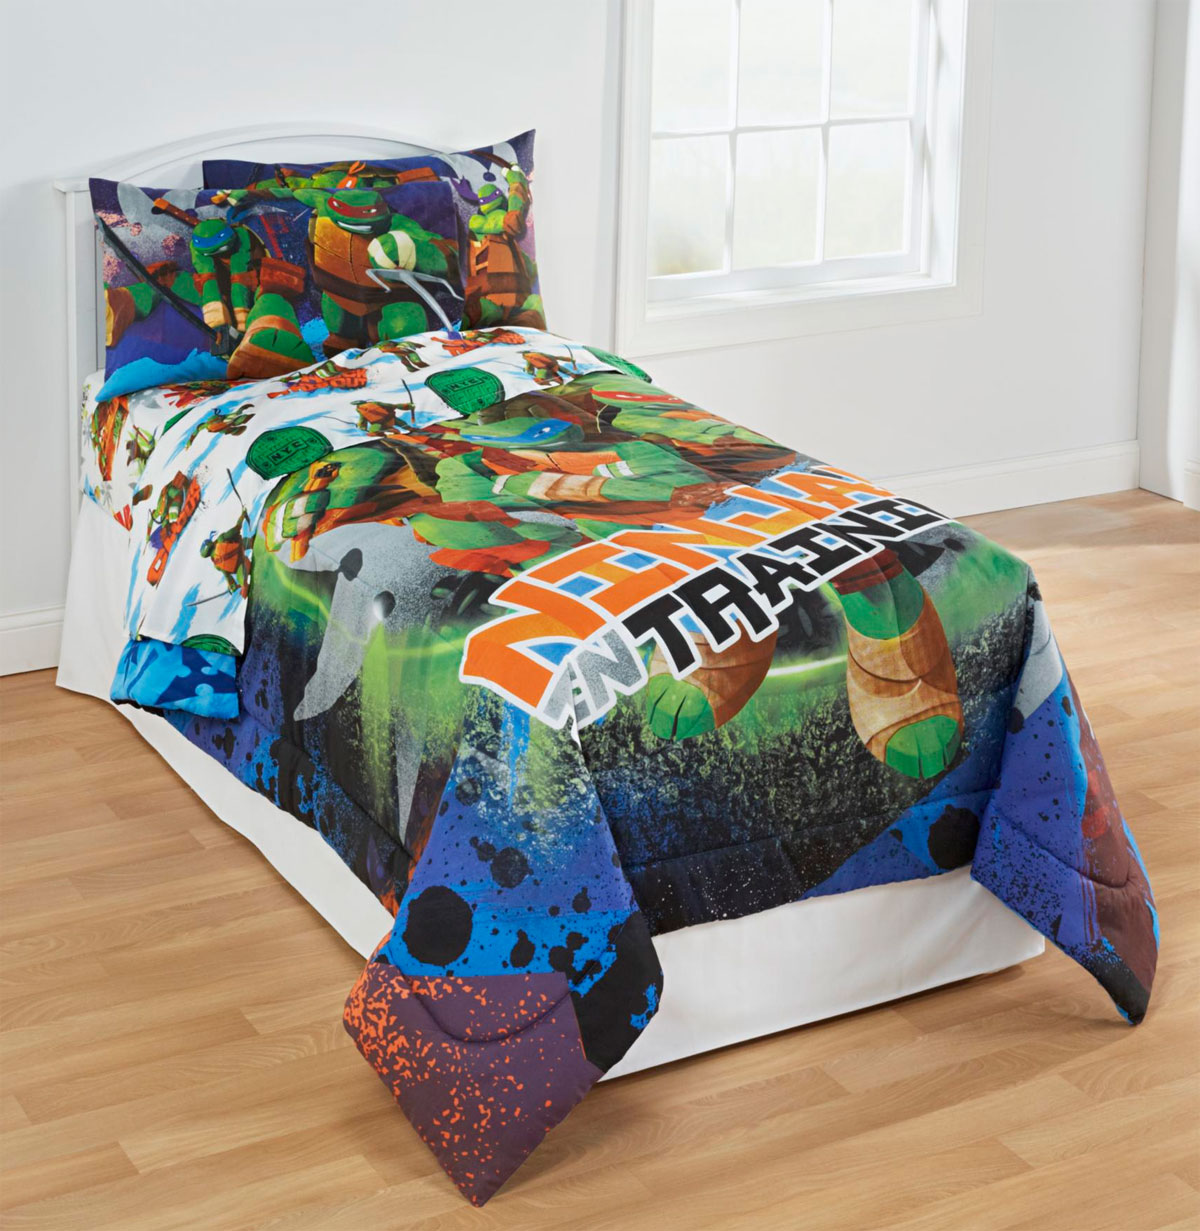 4pc TEENAGE MUTANT NINJA TURTLES TWIN BEDDING SET